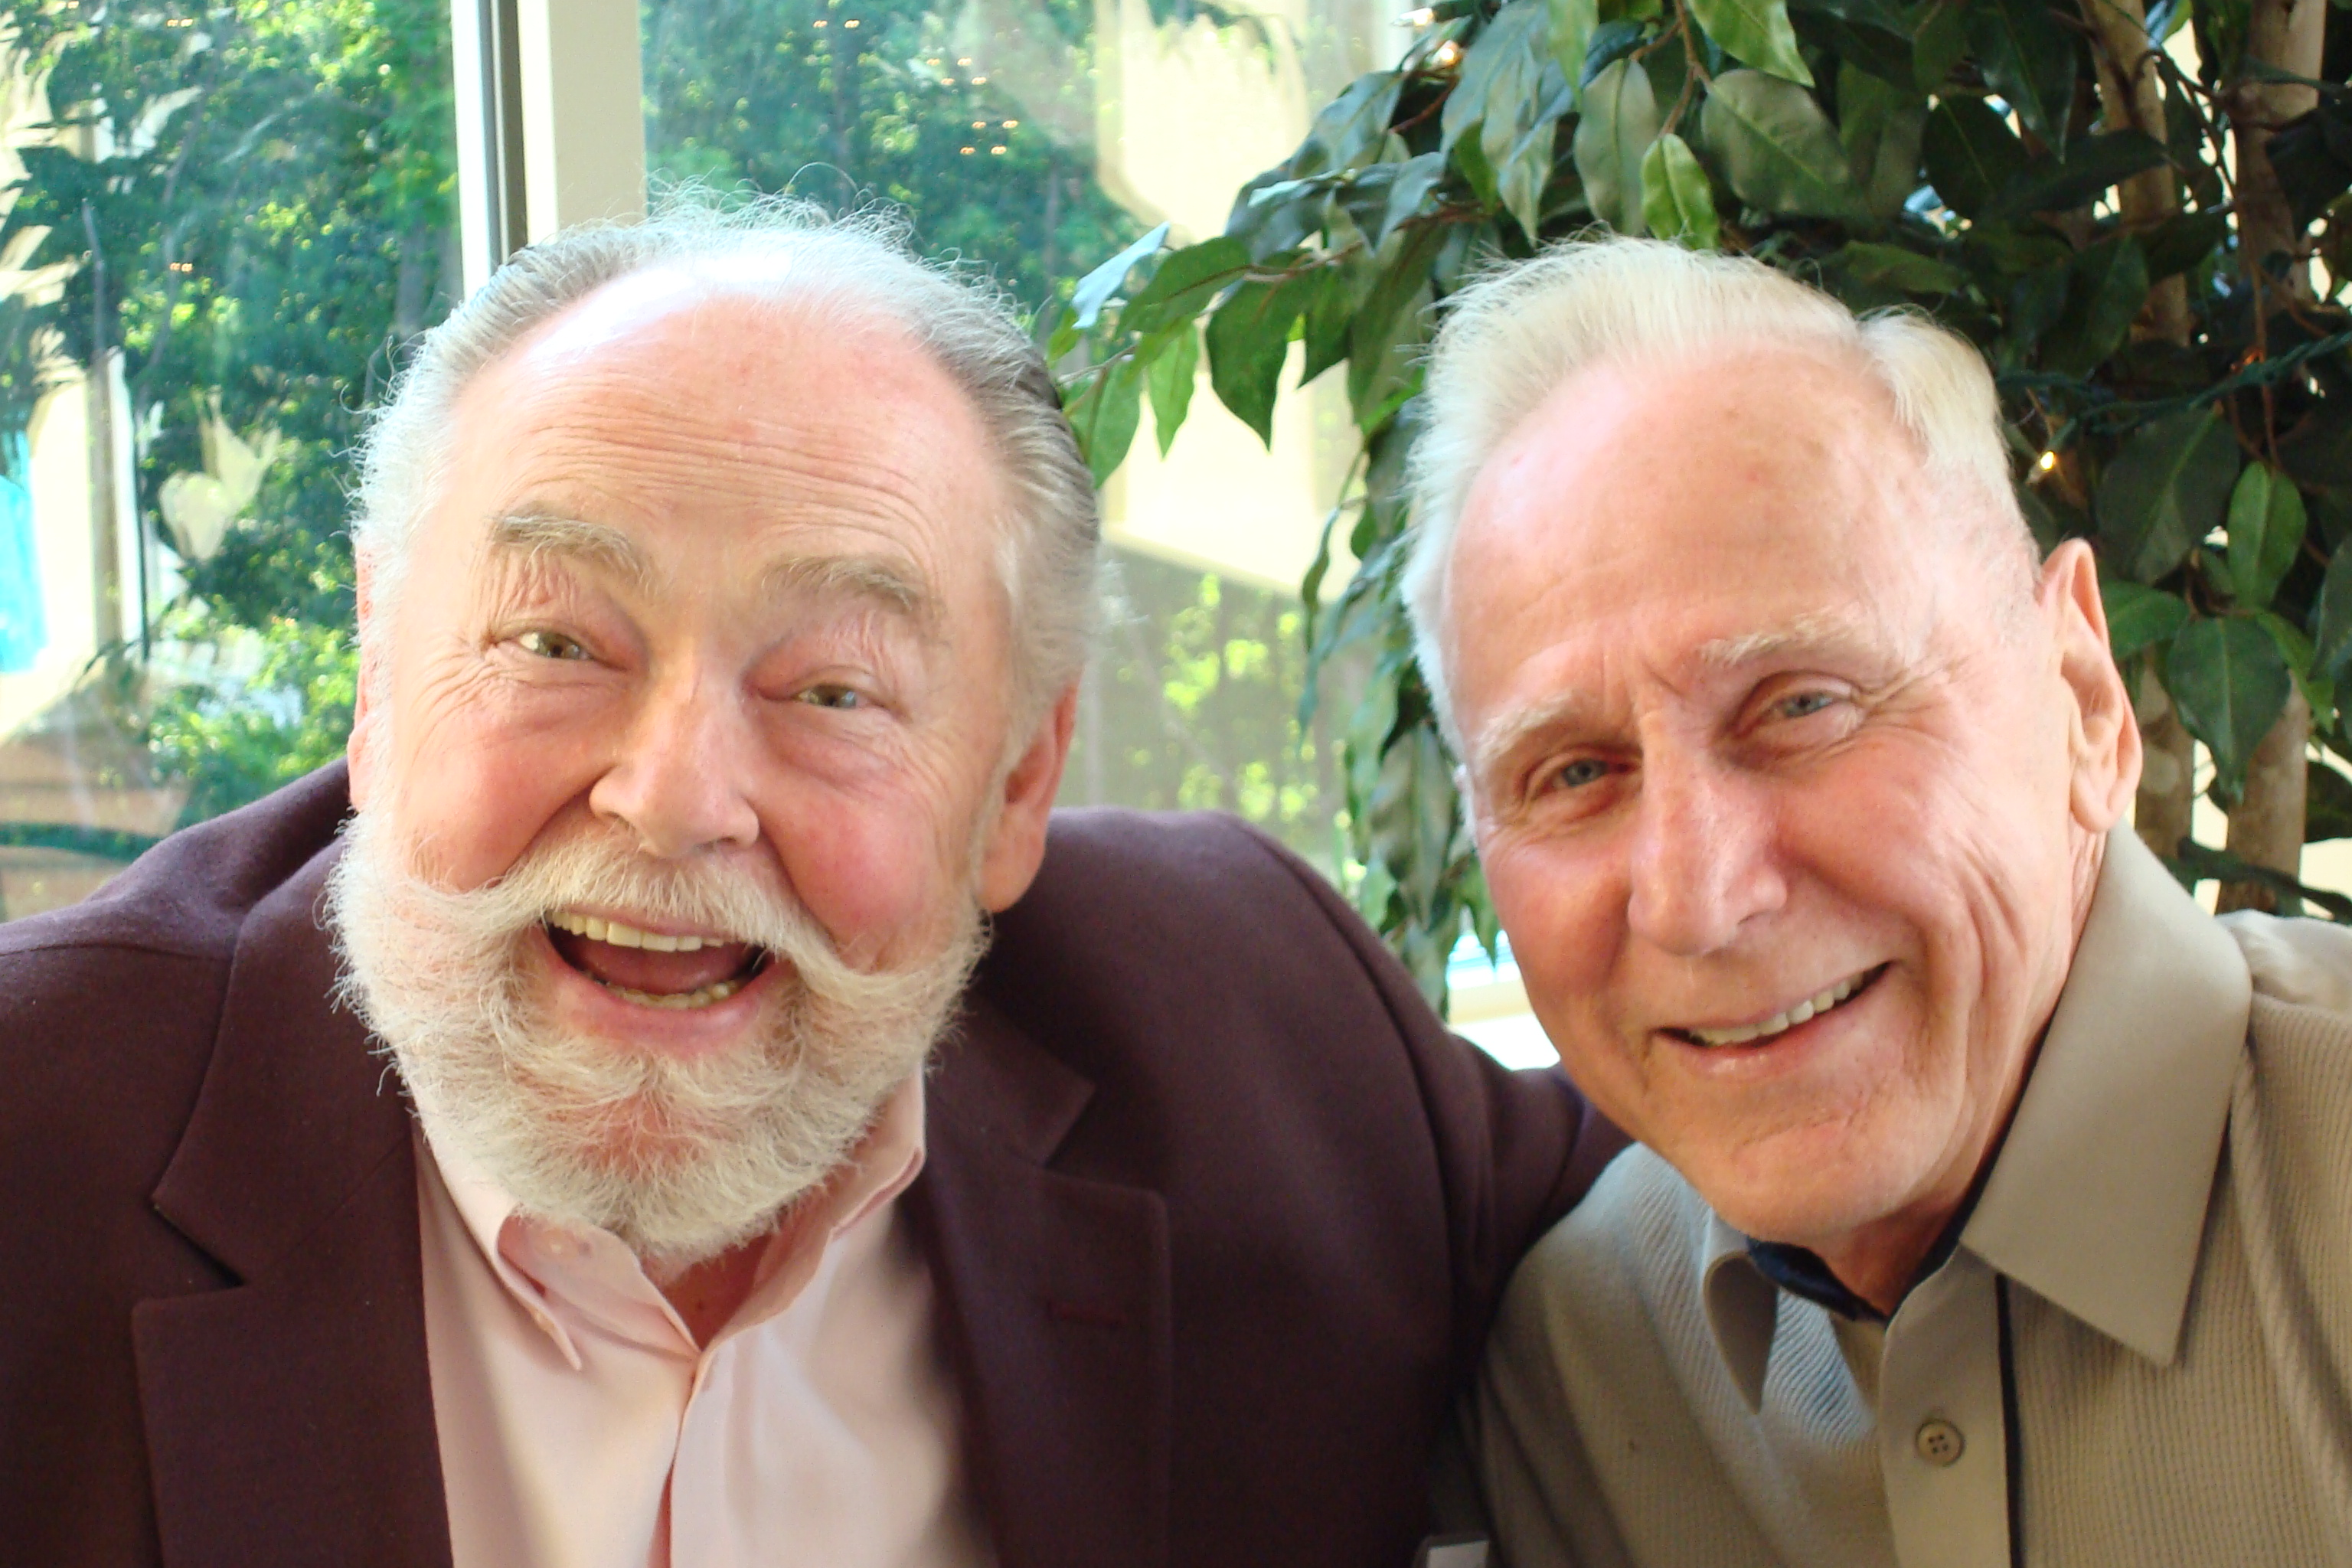 John Duffy with Father Bill Hultberg, who served as Caron's  spiritual advisor until his retirement last year.